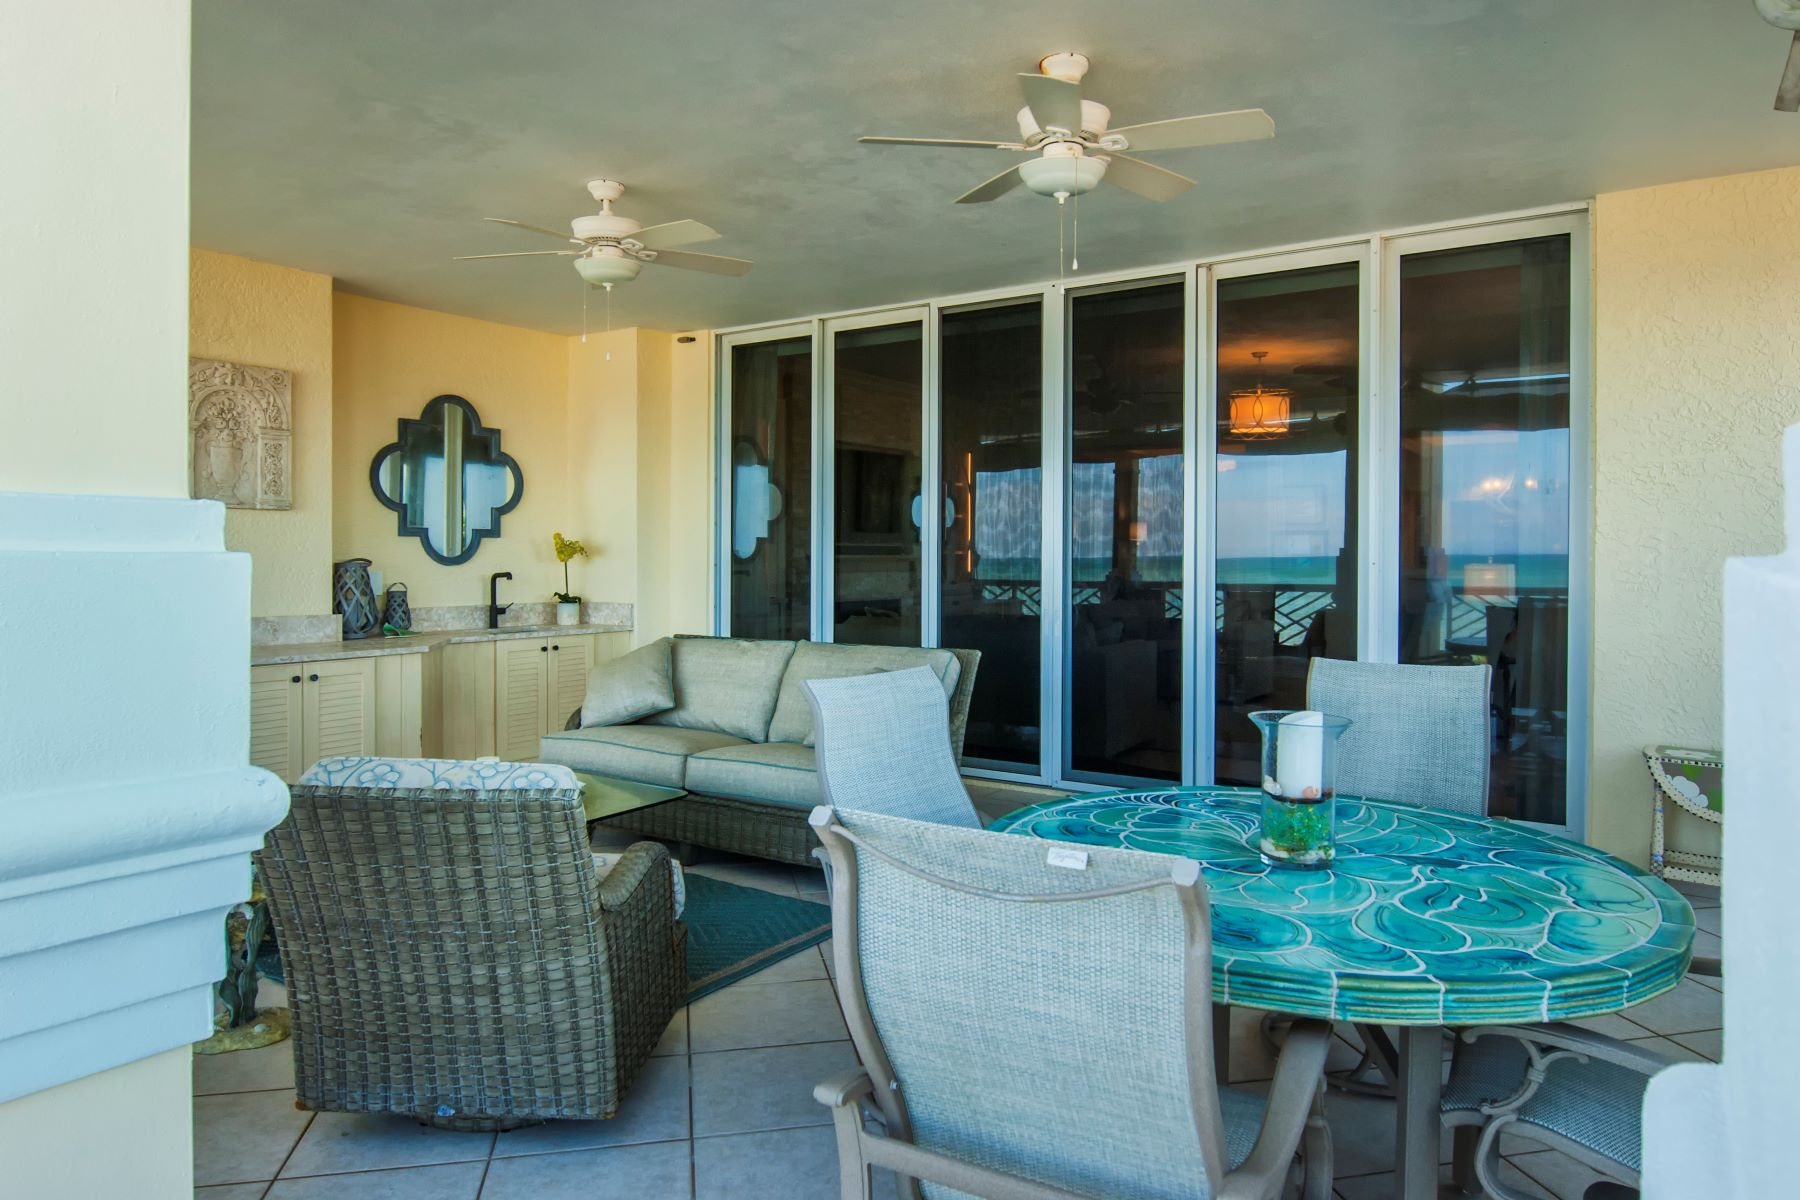 Additional photo for property listing at 600 Beachview Drive 2N Indian River Shores, Florida 32963 United States